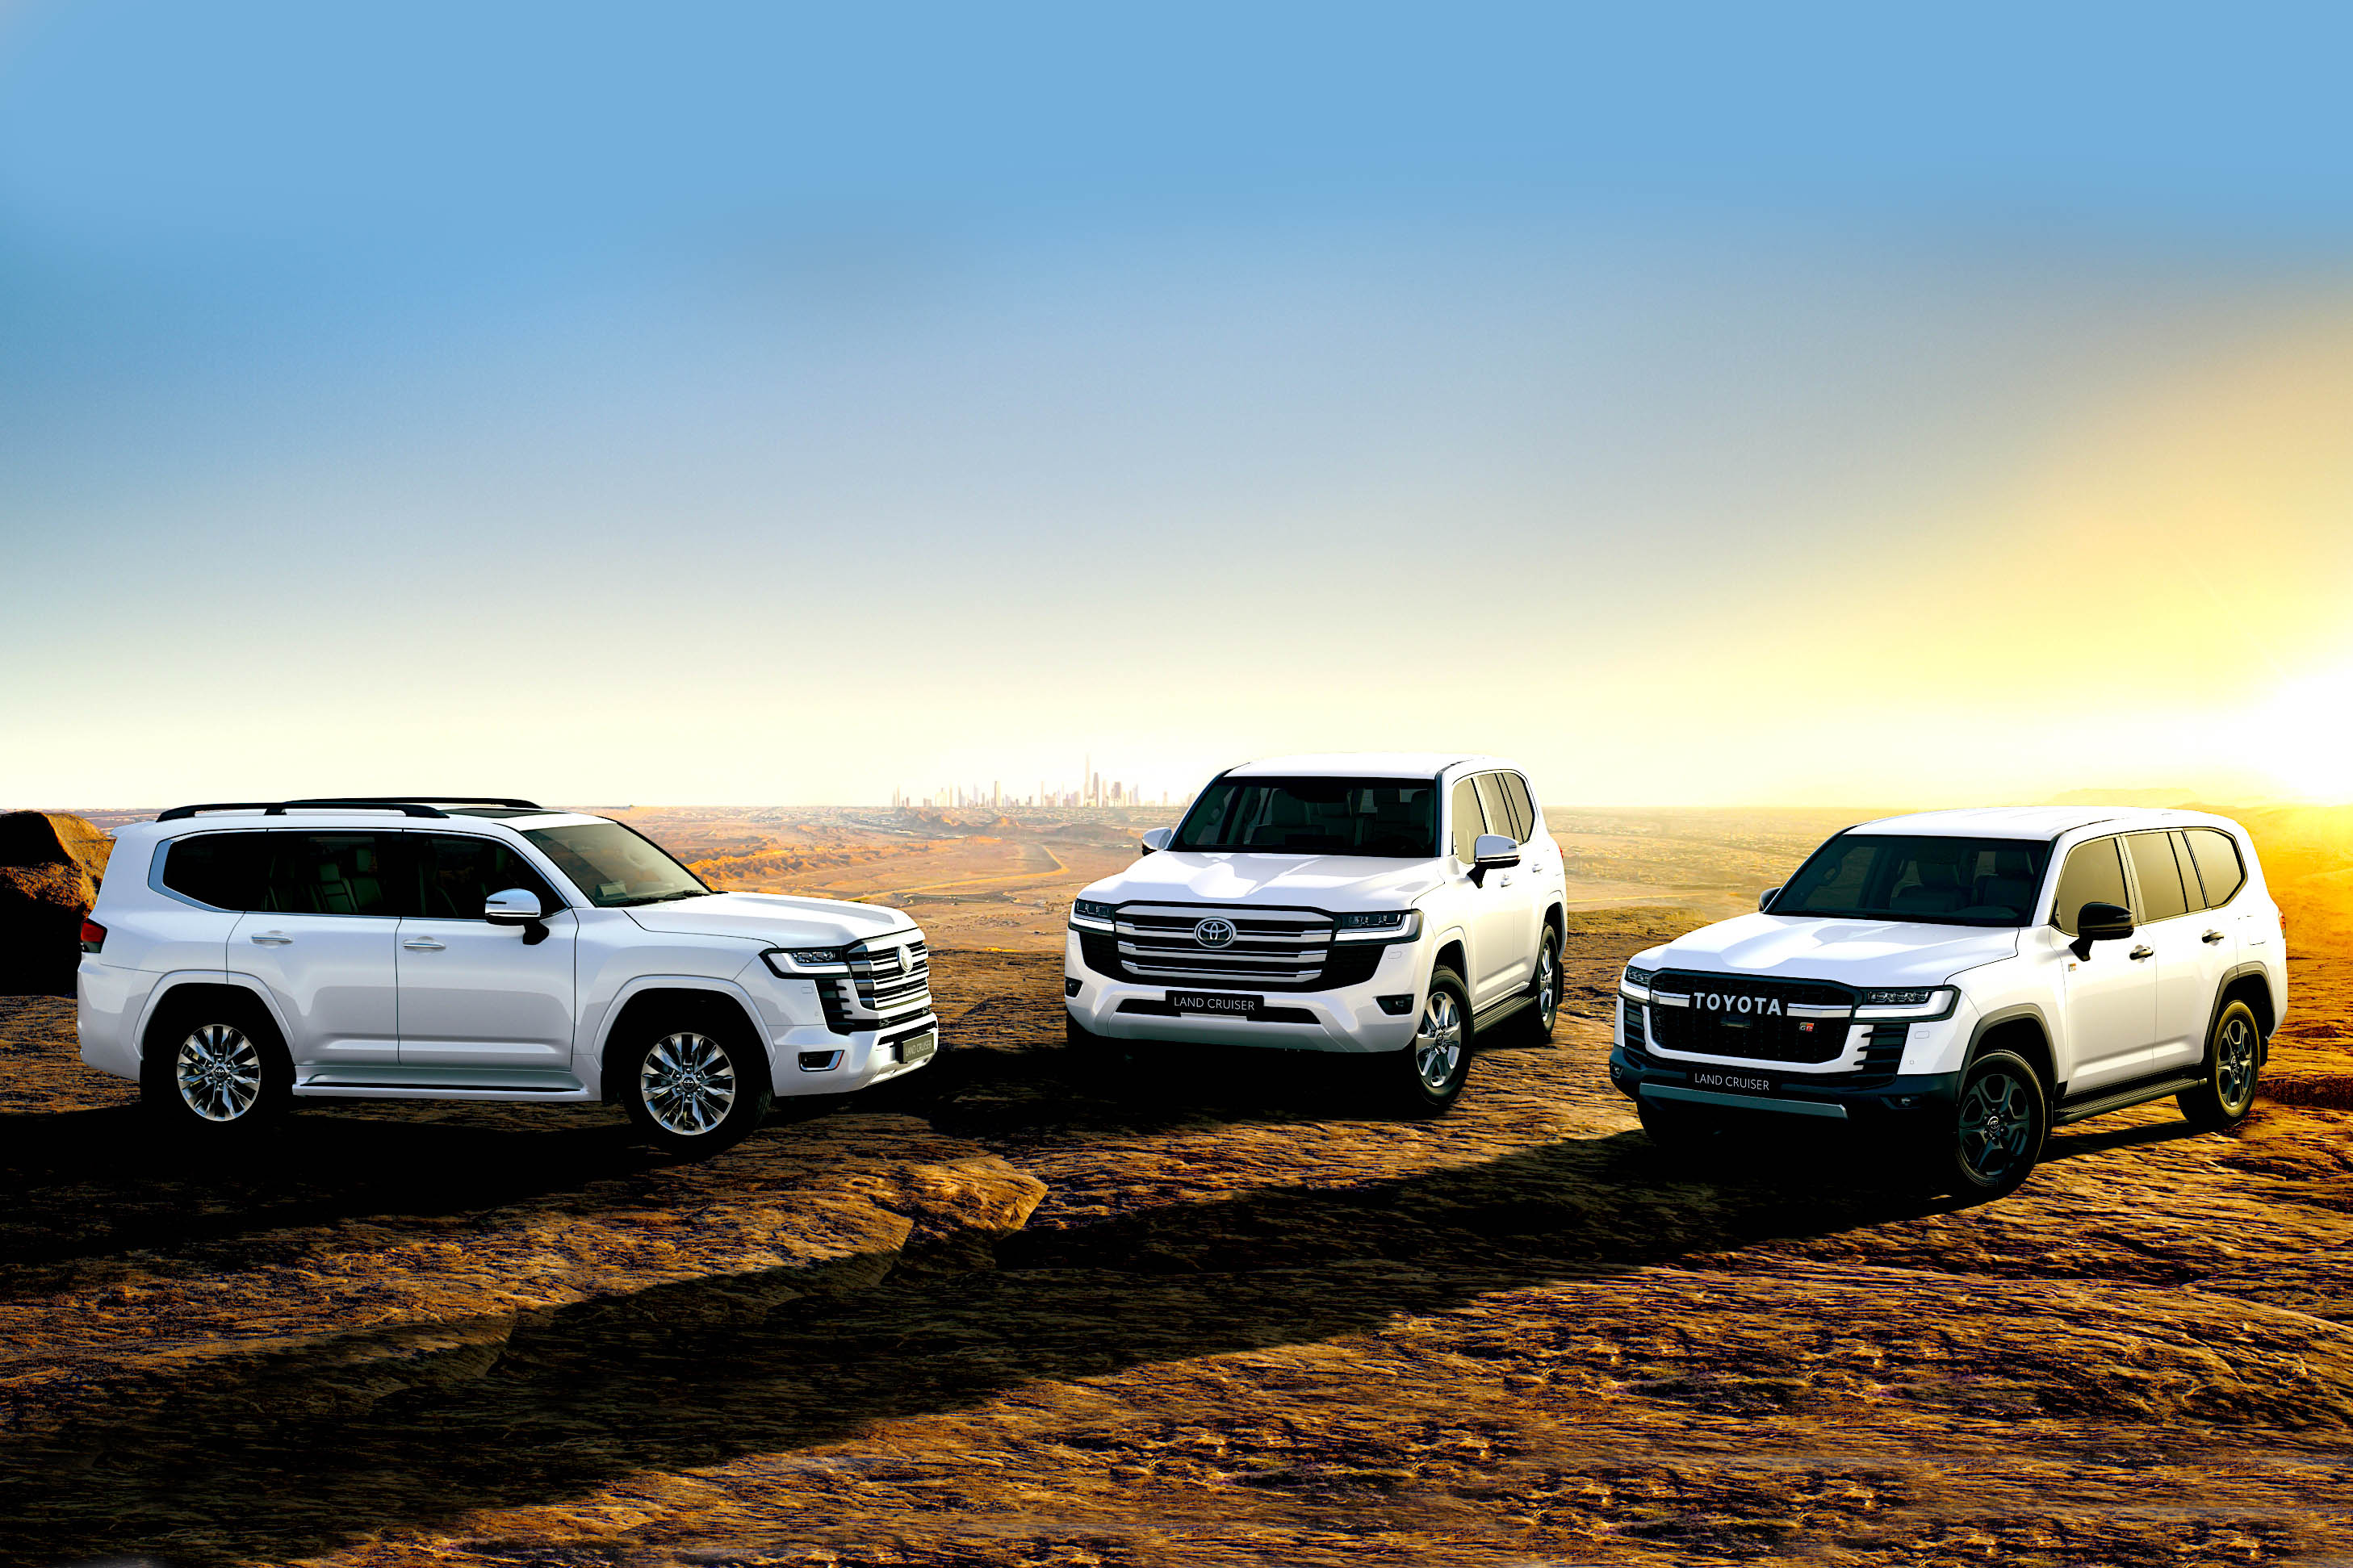 AND THERE IT IS! MEET TOYOTA'S ALL-NEW LAND CRUISER 300